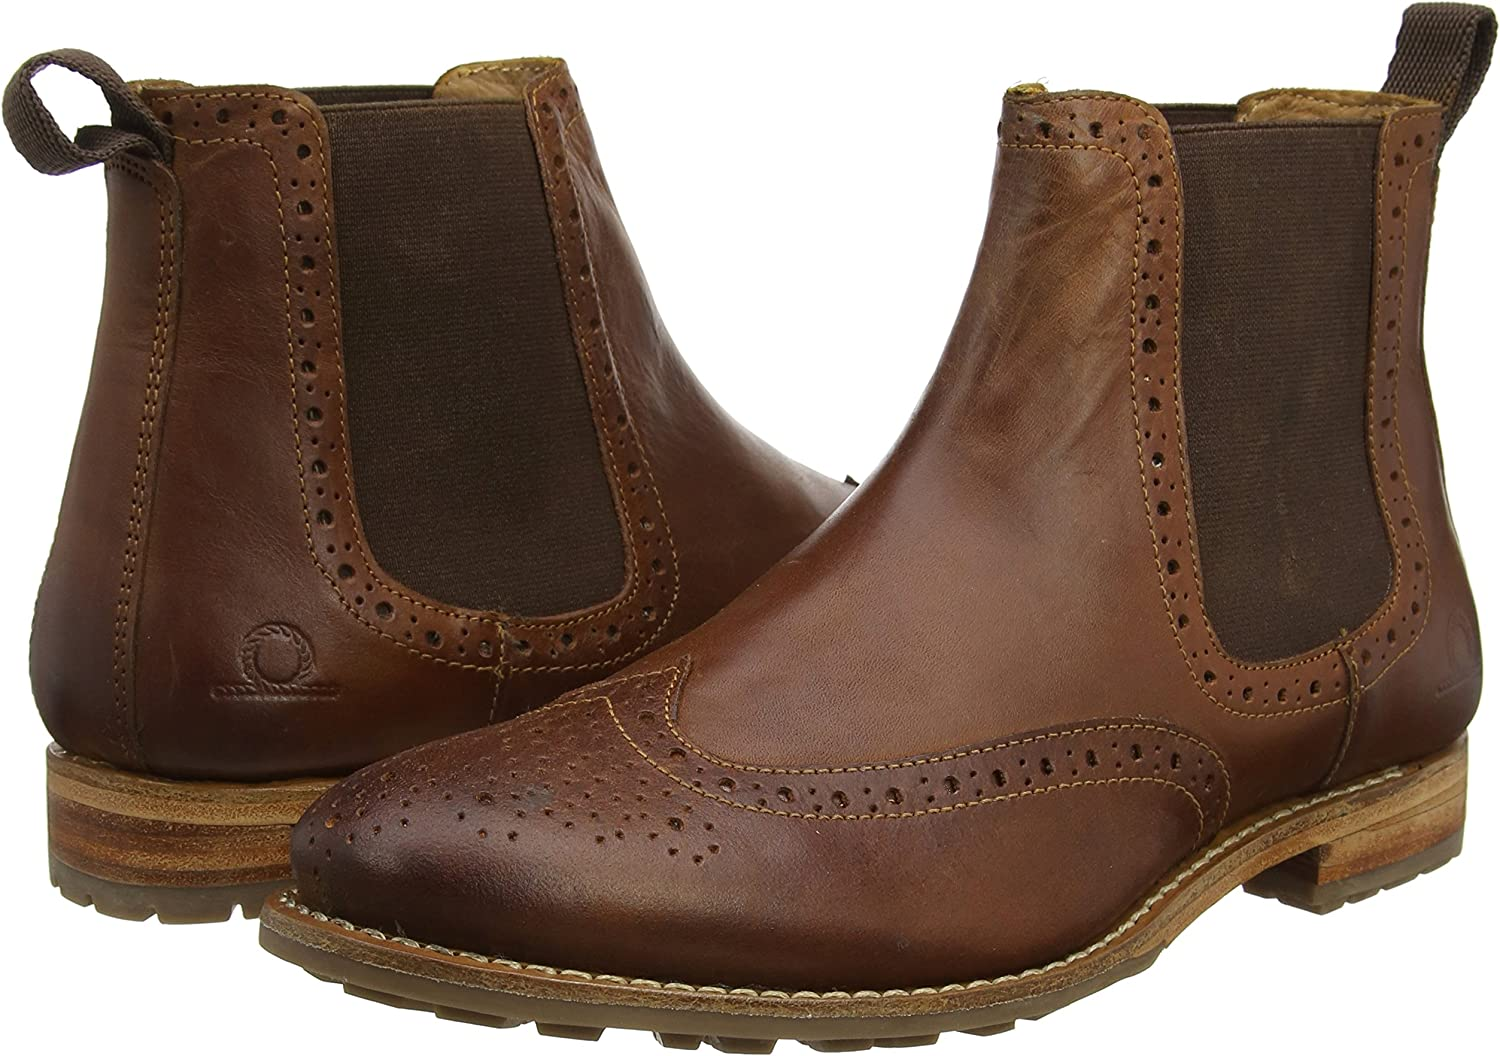 Chatham DUDLEY II Mens Leather Memory Foam Slip On Brogue Chelsea Boots Black